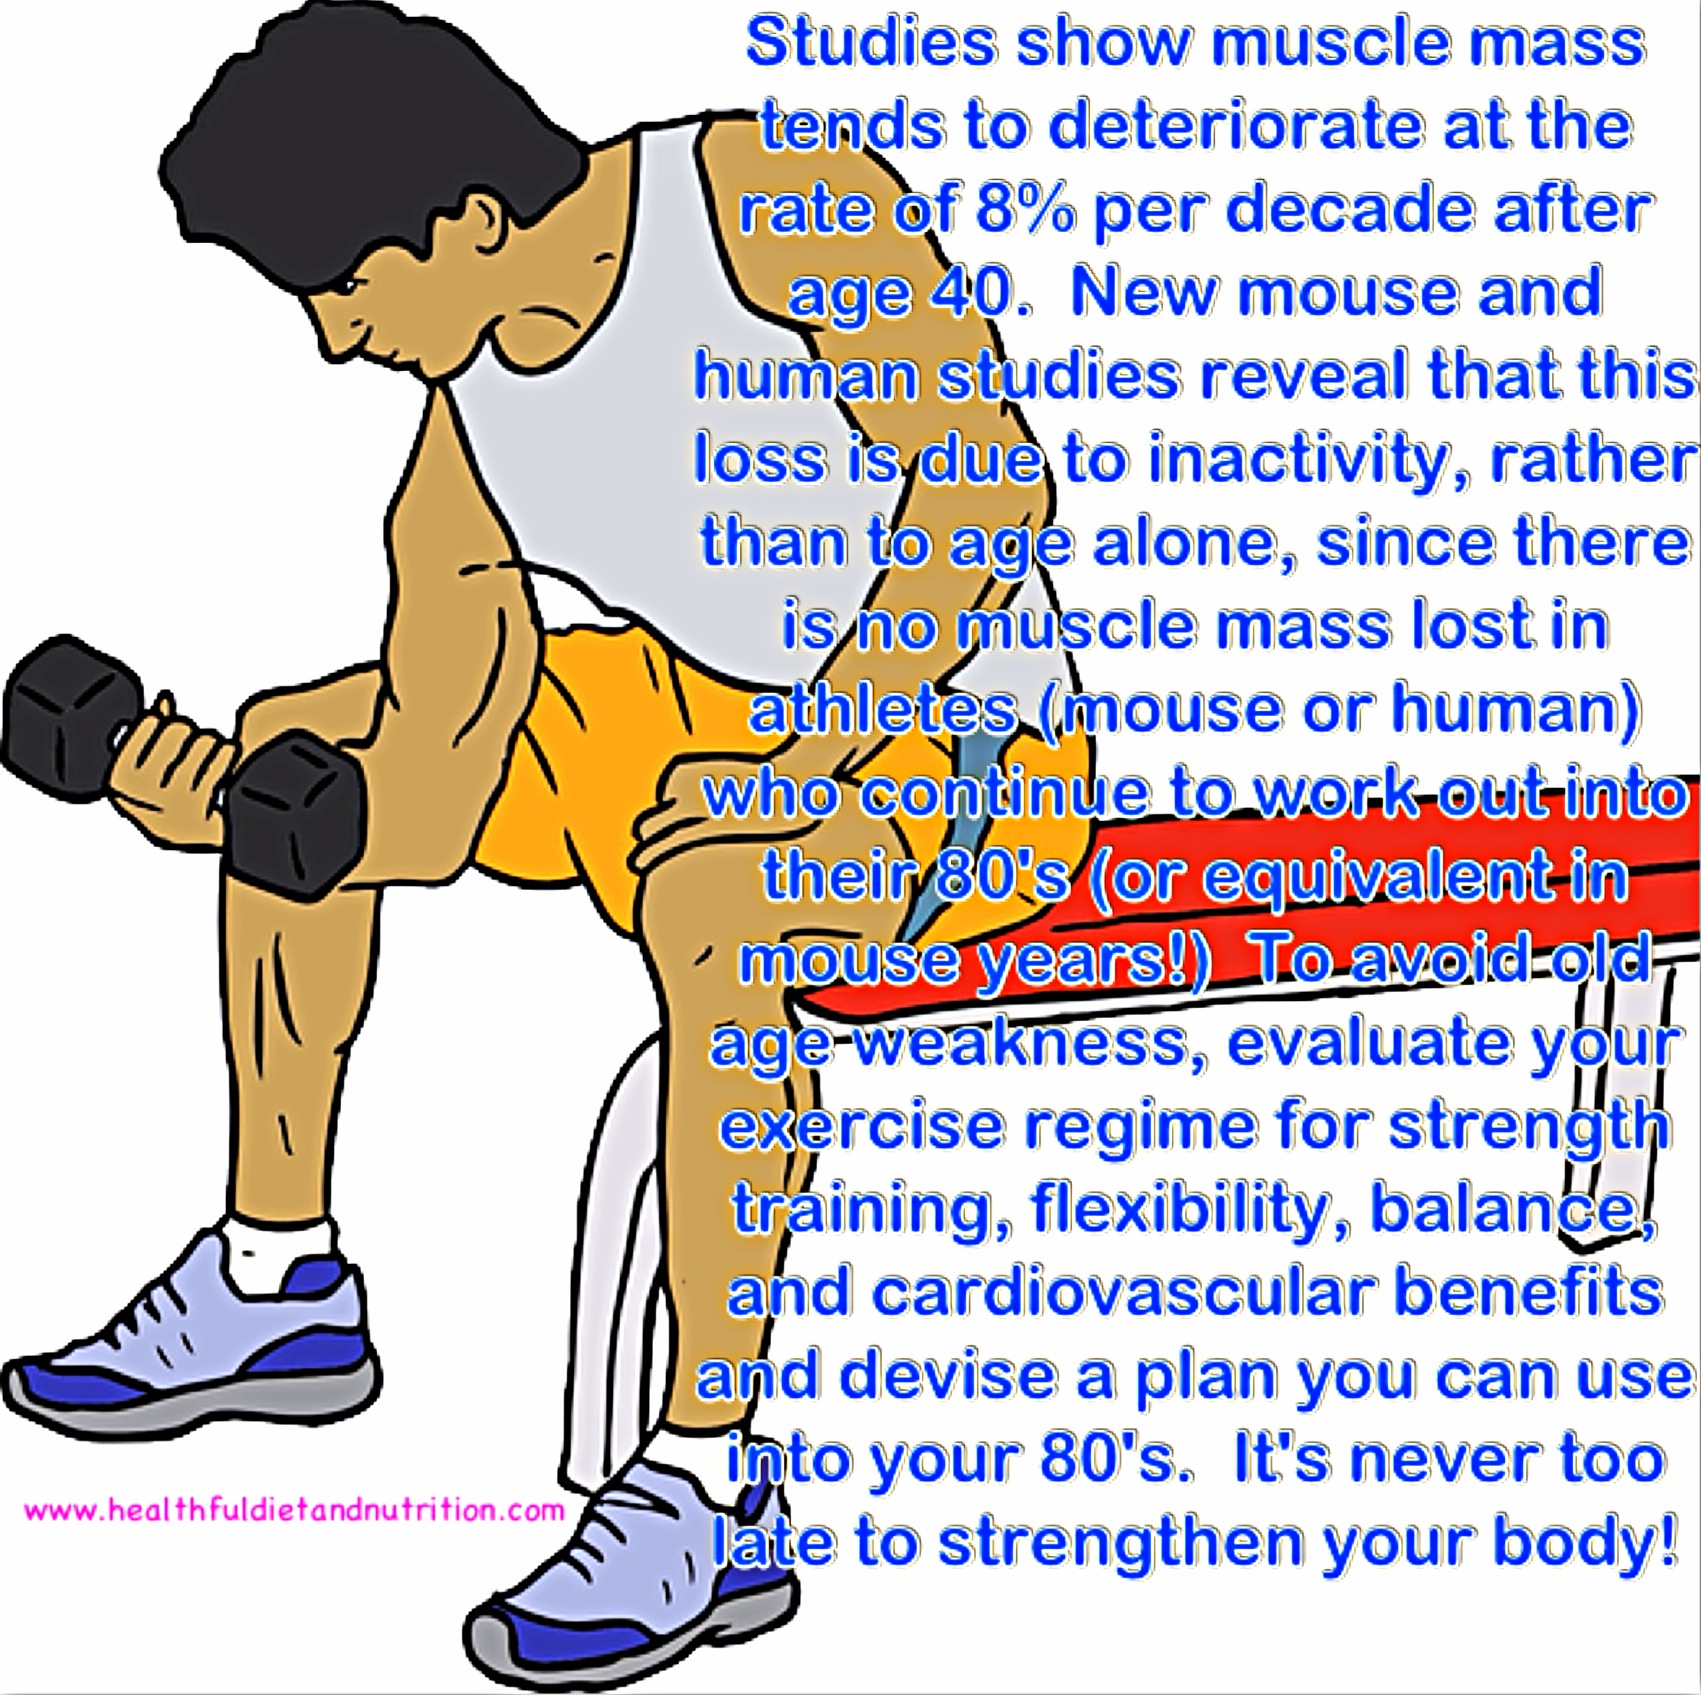 Strengthen Your Body To Avoid Muscle Mass Loss